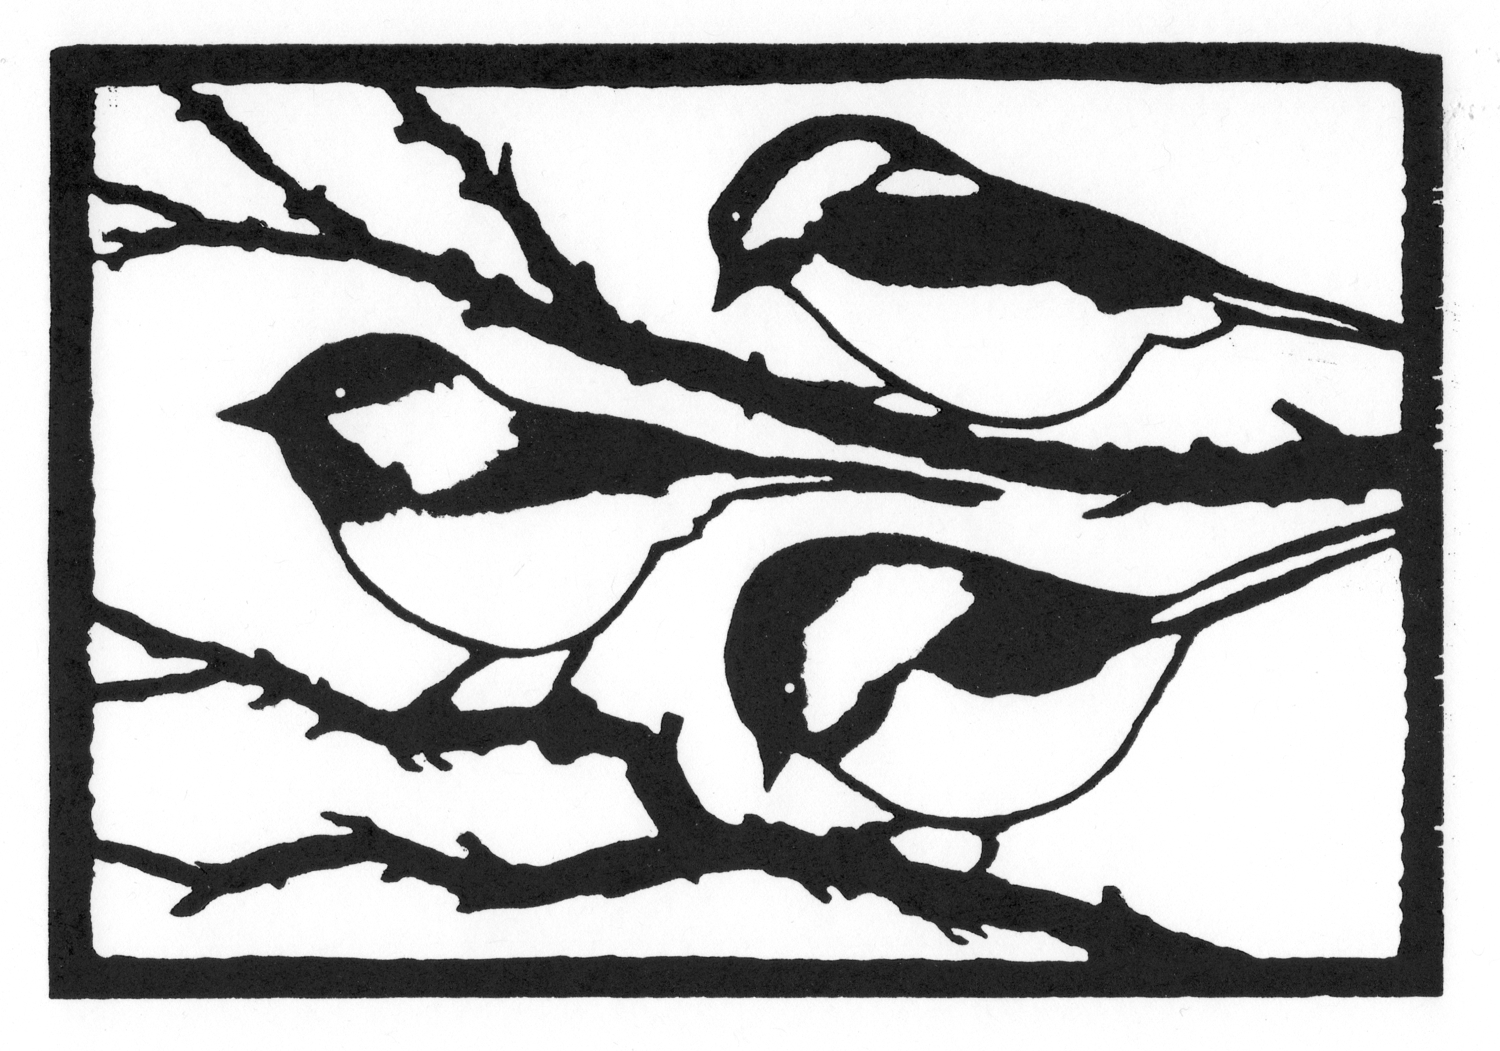 Chickadees • © Fred Montague  $48 • image 8 x 5.5 • mat 14 x 11  Edition size: 88 • status: available